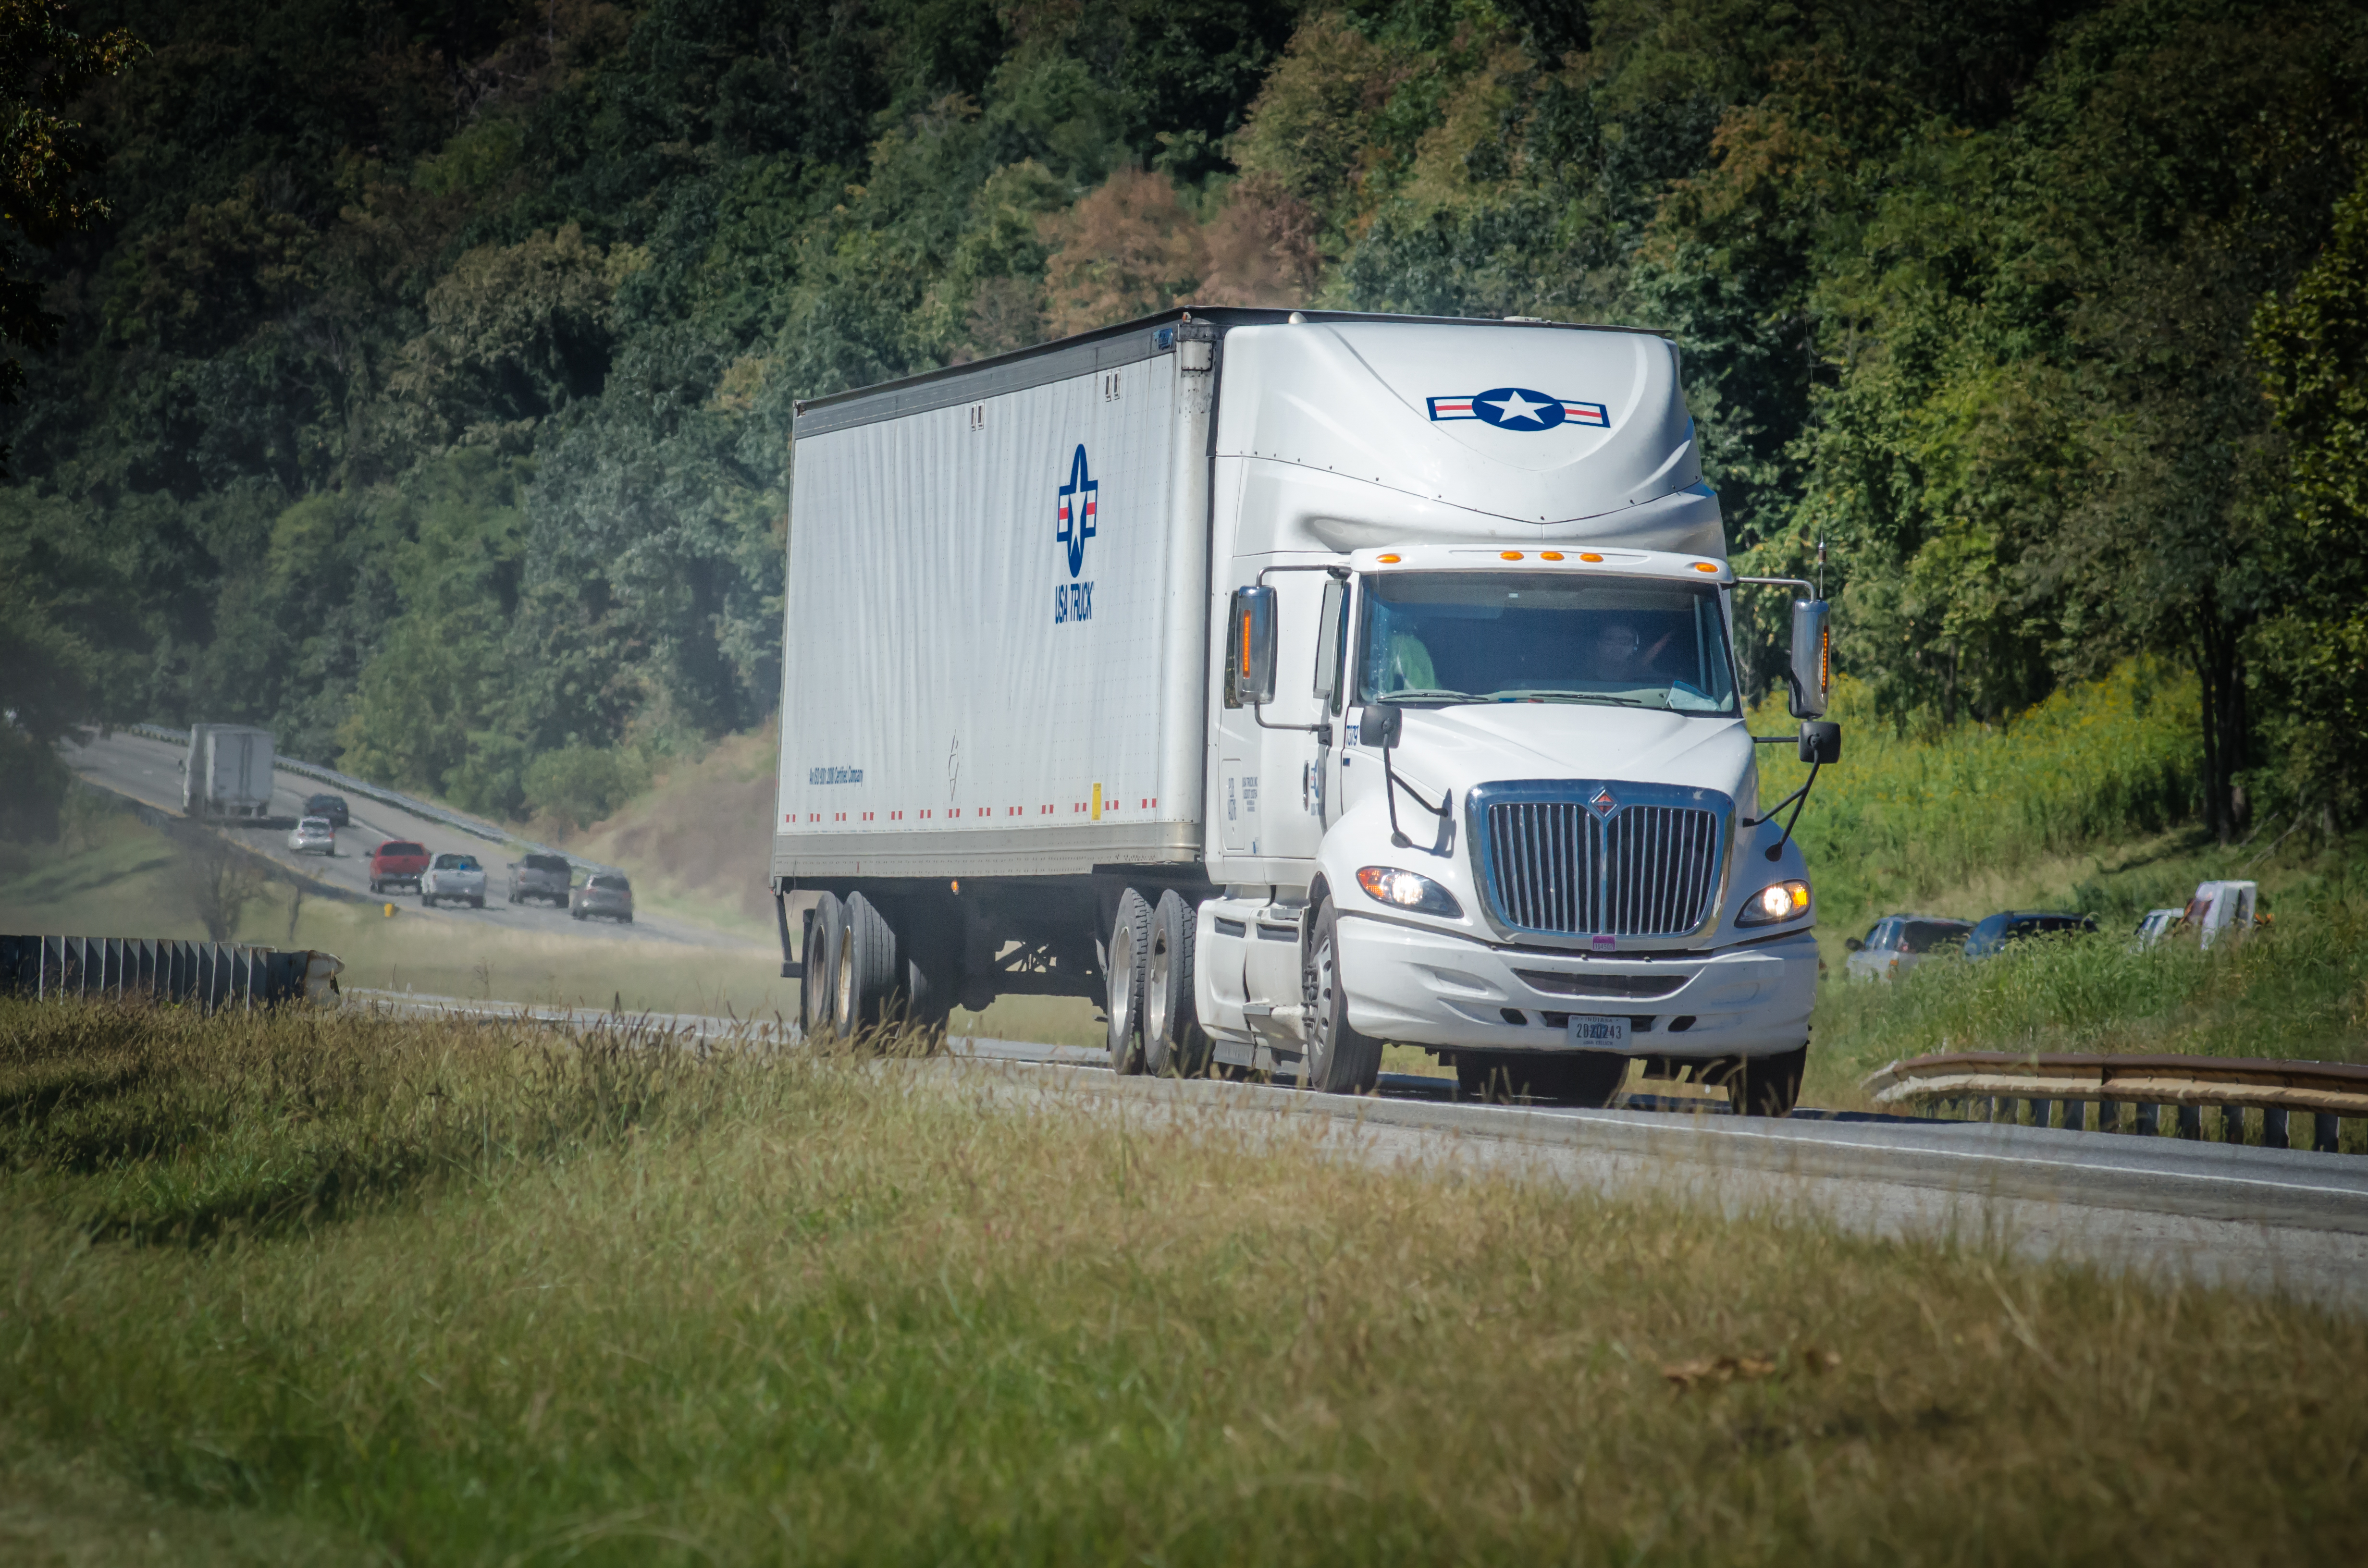 Driver recruitment and retention remains key for carriers